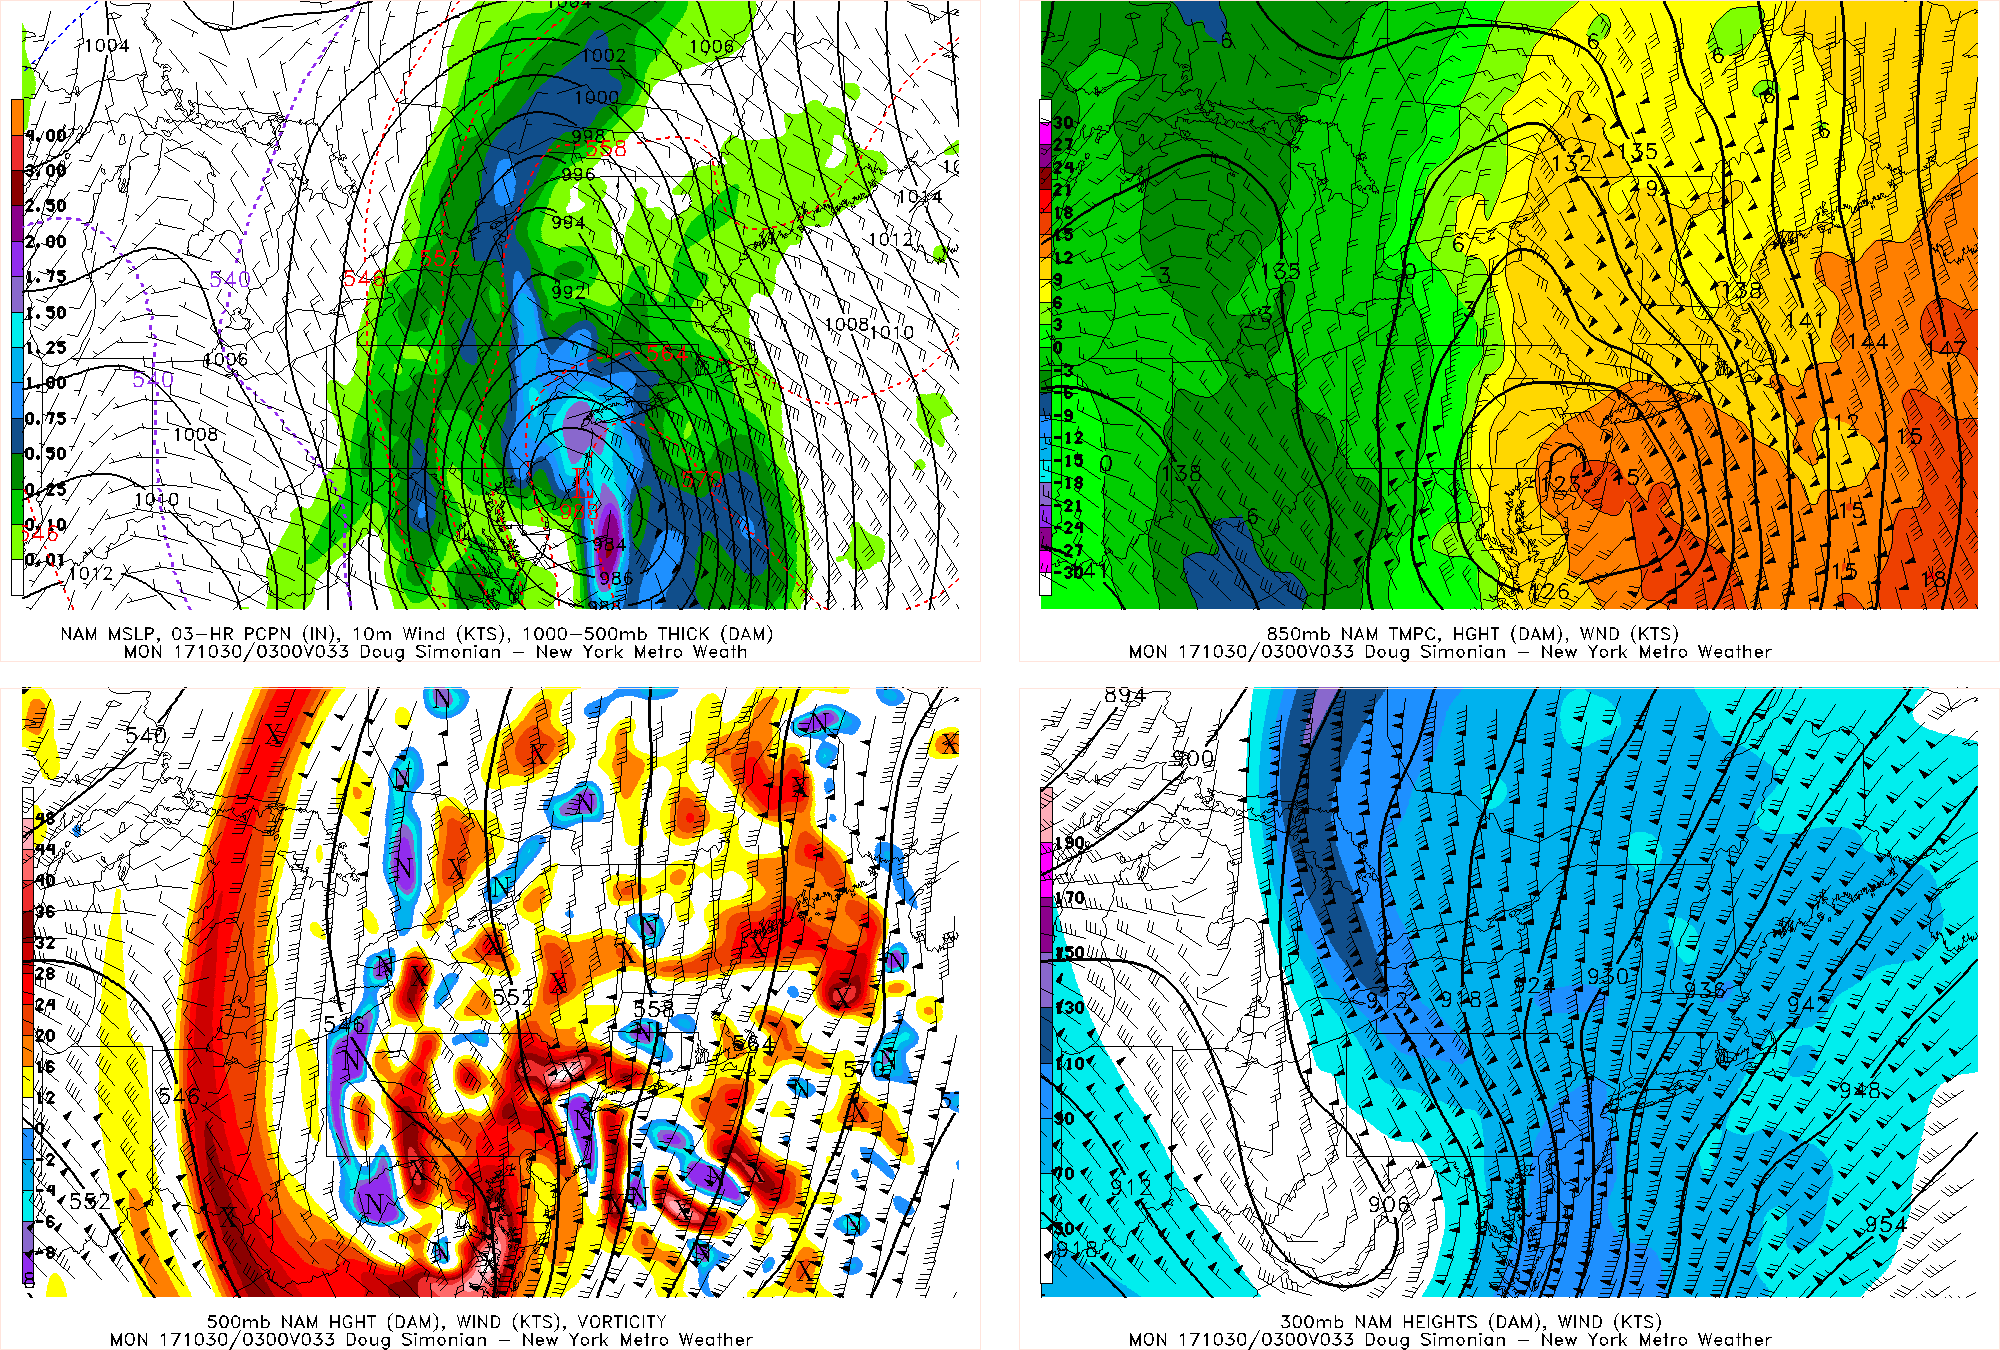 NAM model showing 500mb voriticy and 300 dual jet streak, Sunday night